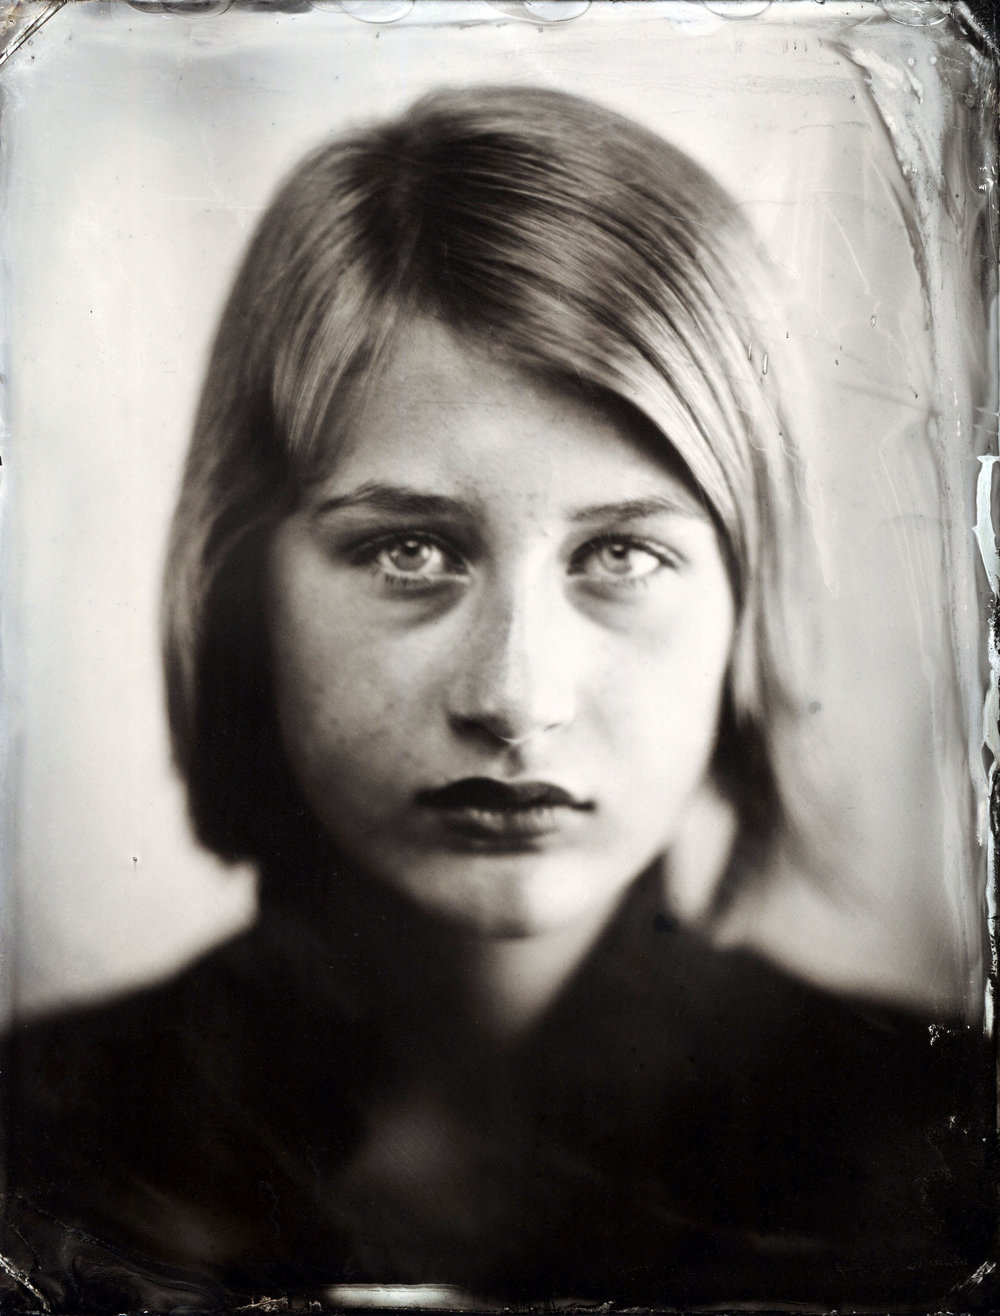 Medium--*$69, Large--$89 for 1 person Tintype -